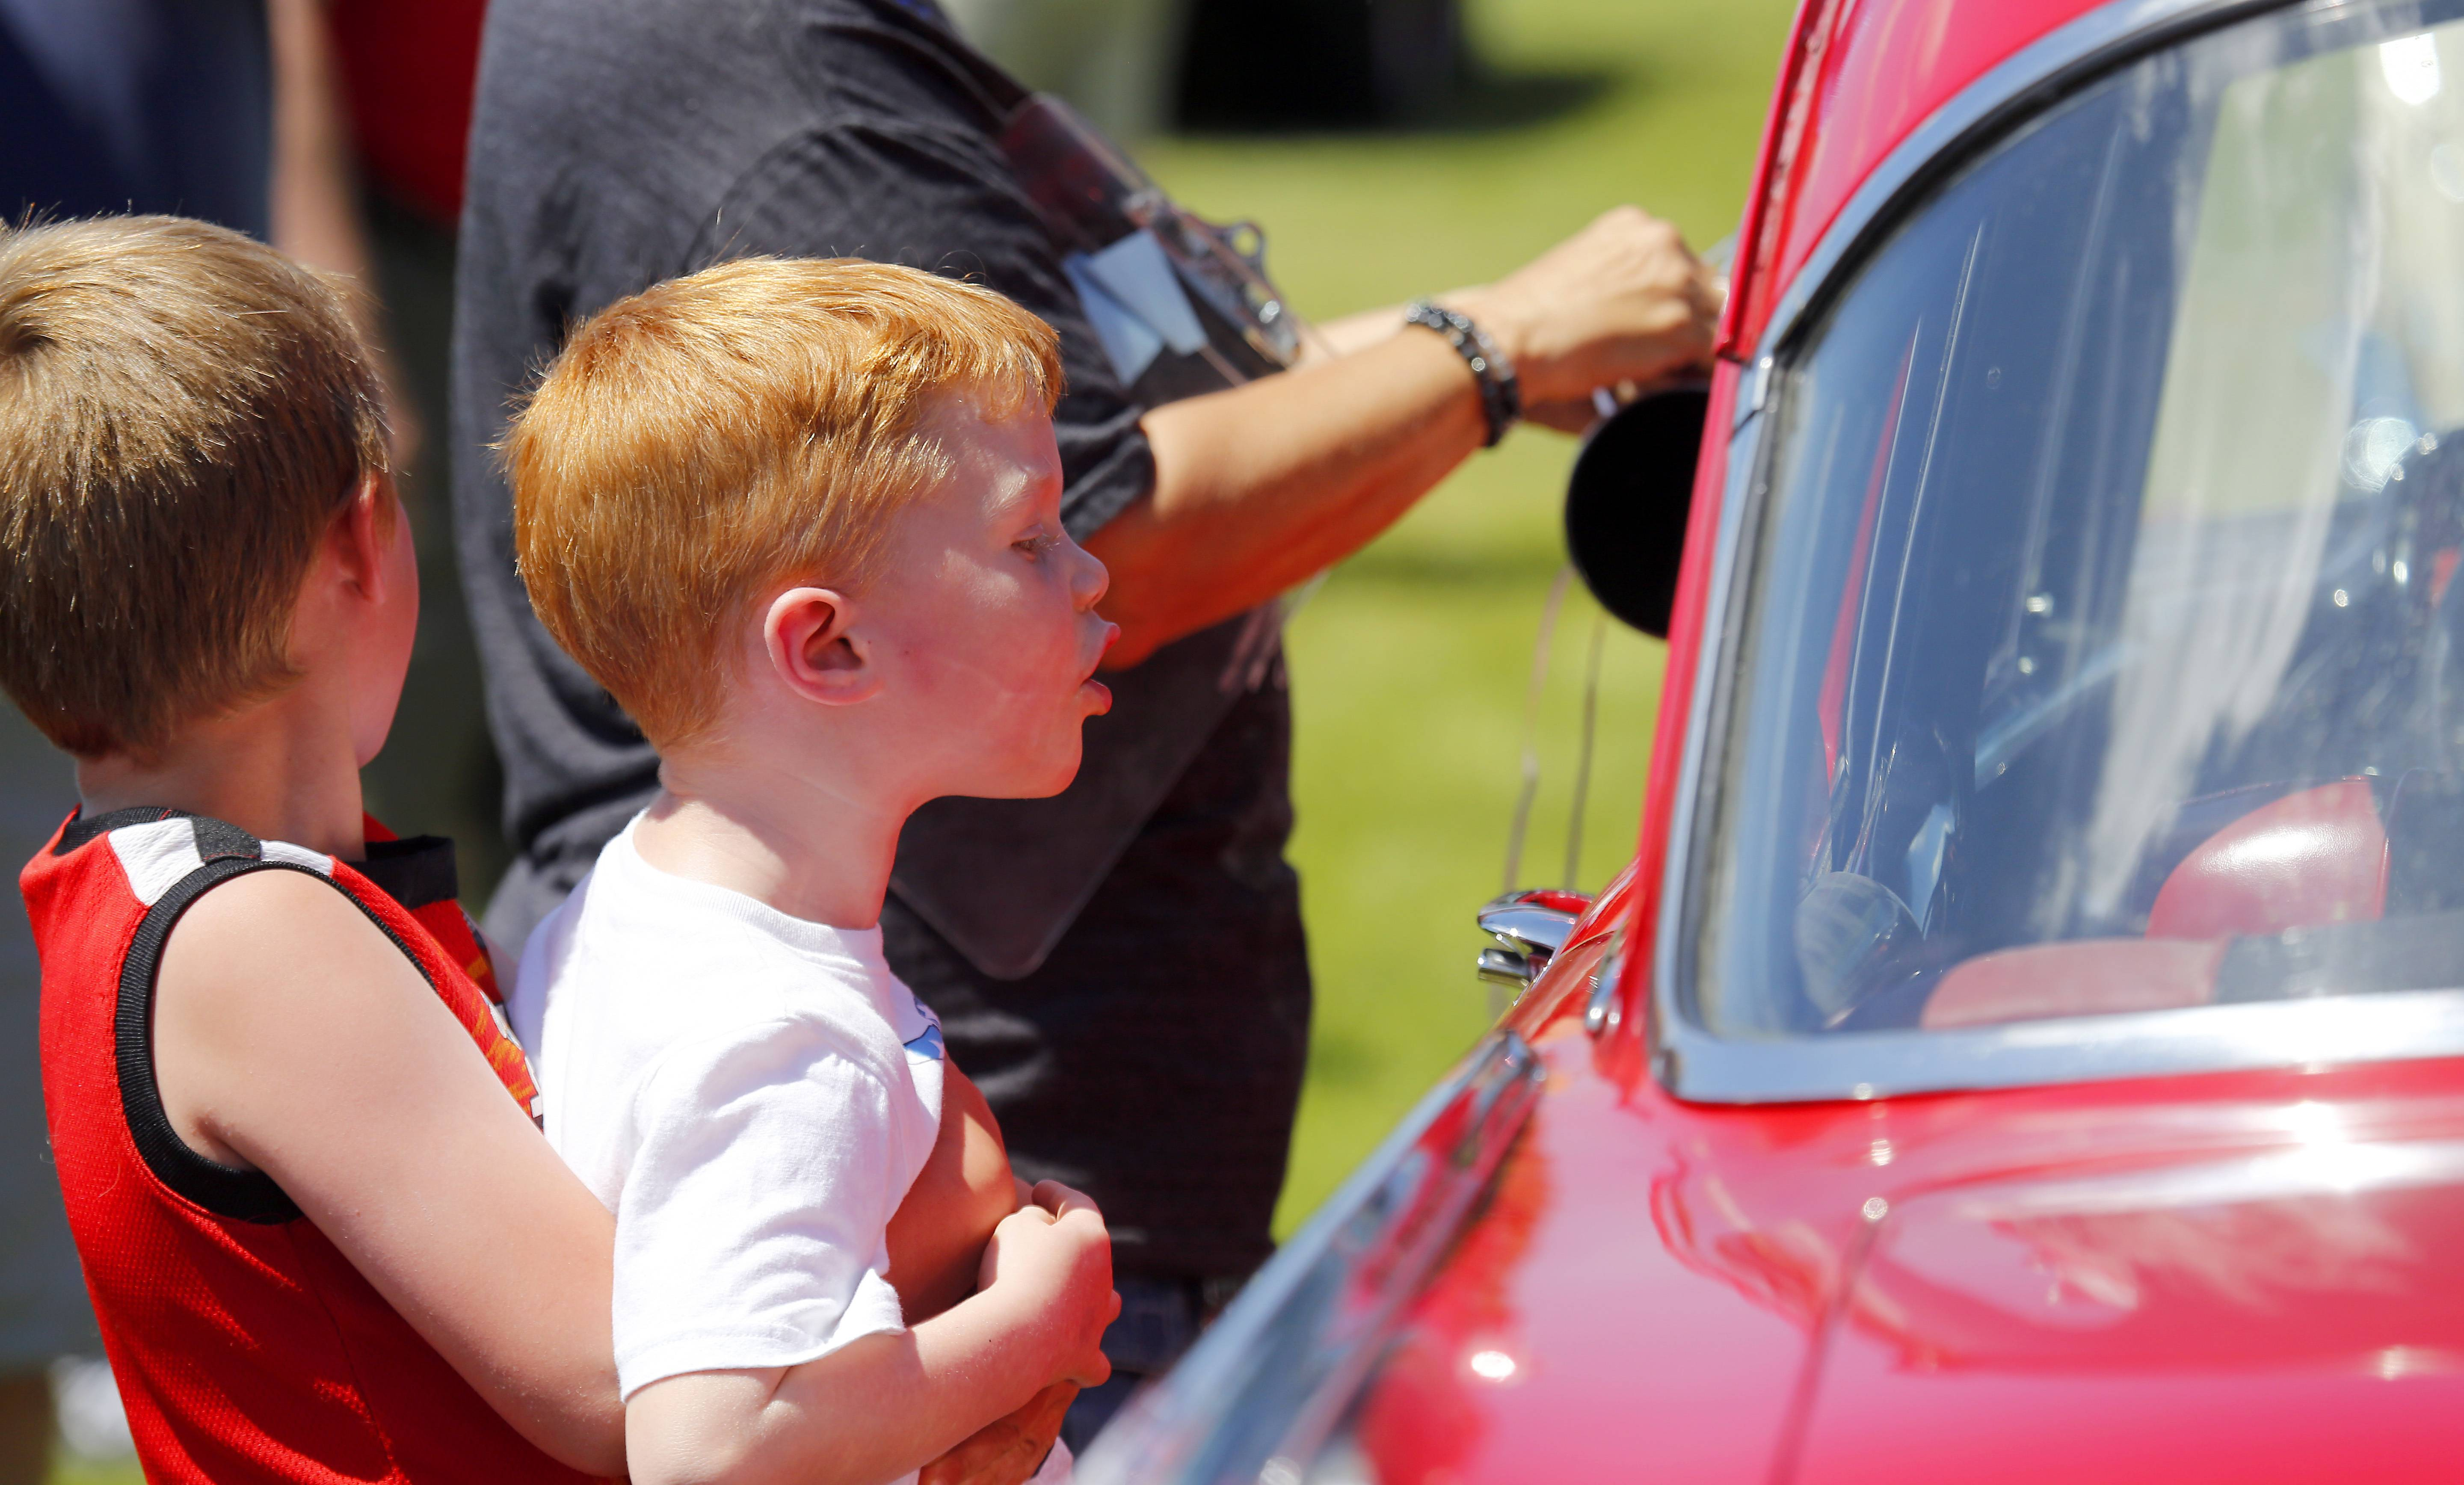 Matthew Pyrek, 6, gives his friend Carter Dustin, 4, both of Gilberts a lift to see into a 1957 Chevy 210 Bel Air during the Buick GS Club of America car show Friday in Sleepy Hollow.